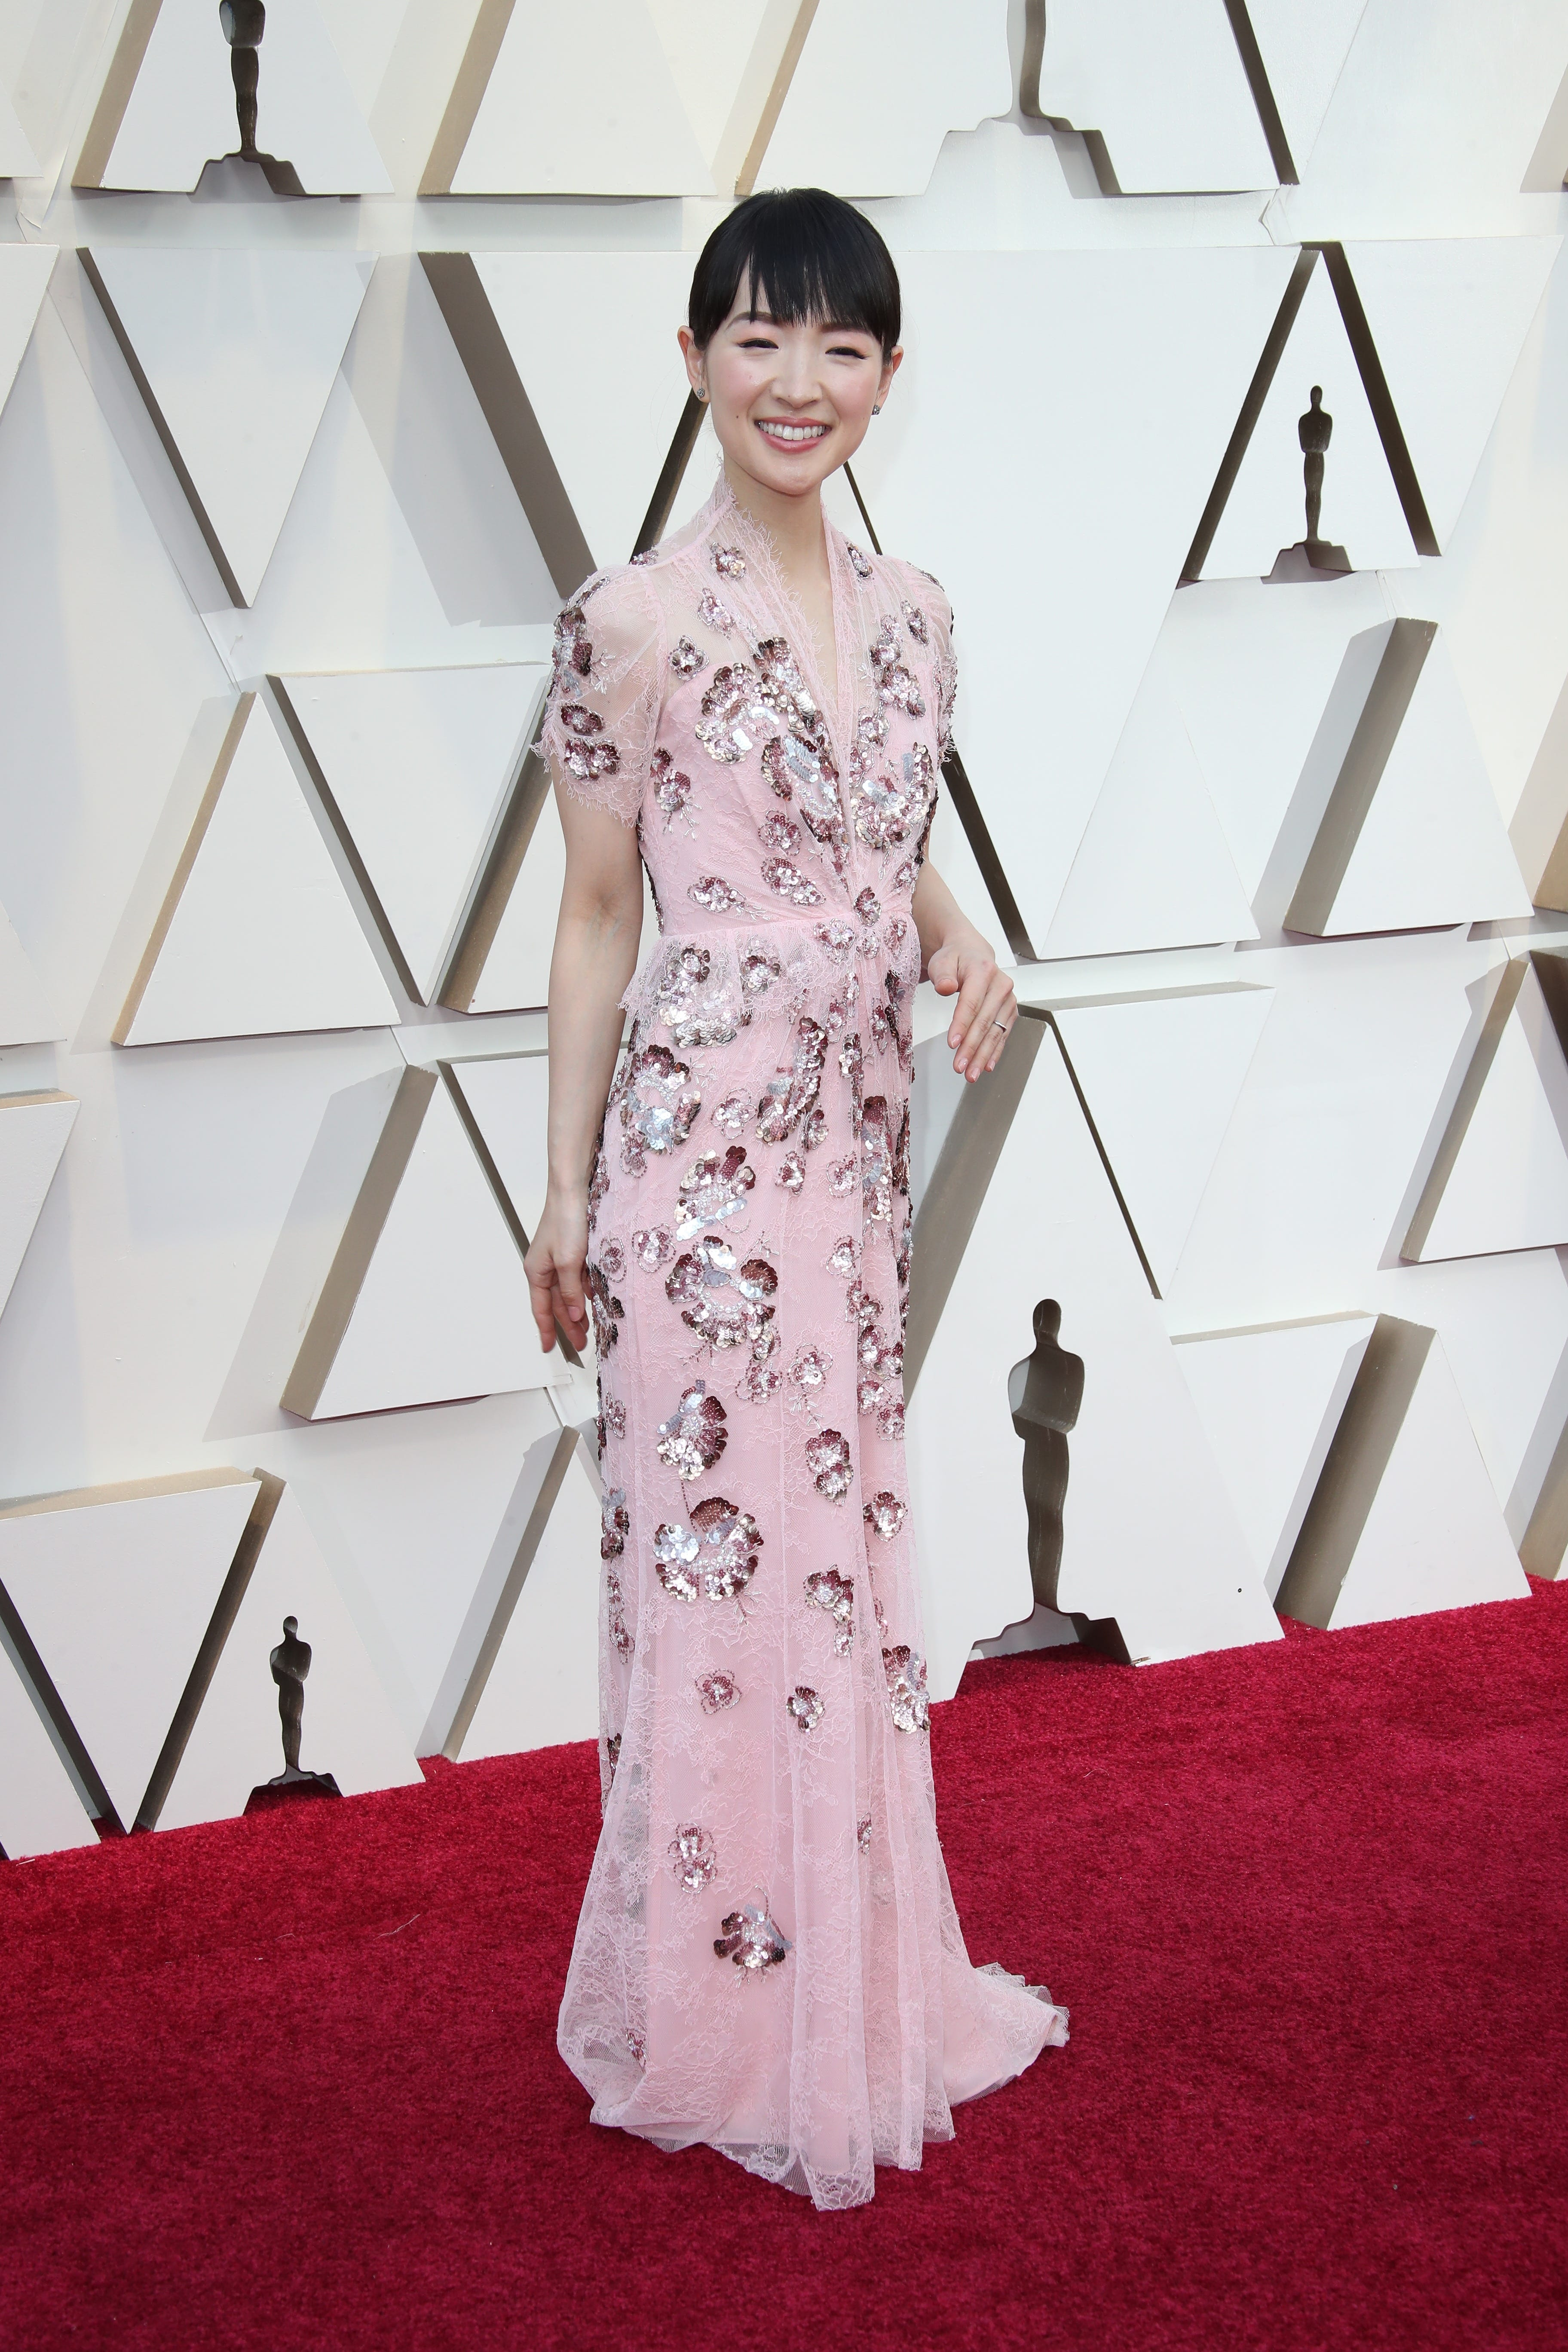 February 24, 2019; Los Angeles, CA, USA; Marie Kondo arrives at the 91st Academy Awards at the Dolby Theatre. Mandatory Credit: Dan MacMedan-USA TODAY NETWORK (Via OlyDrop)